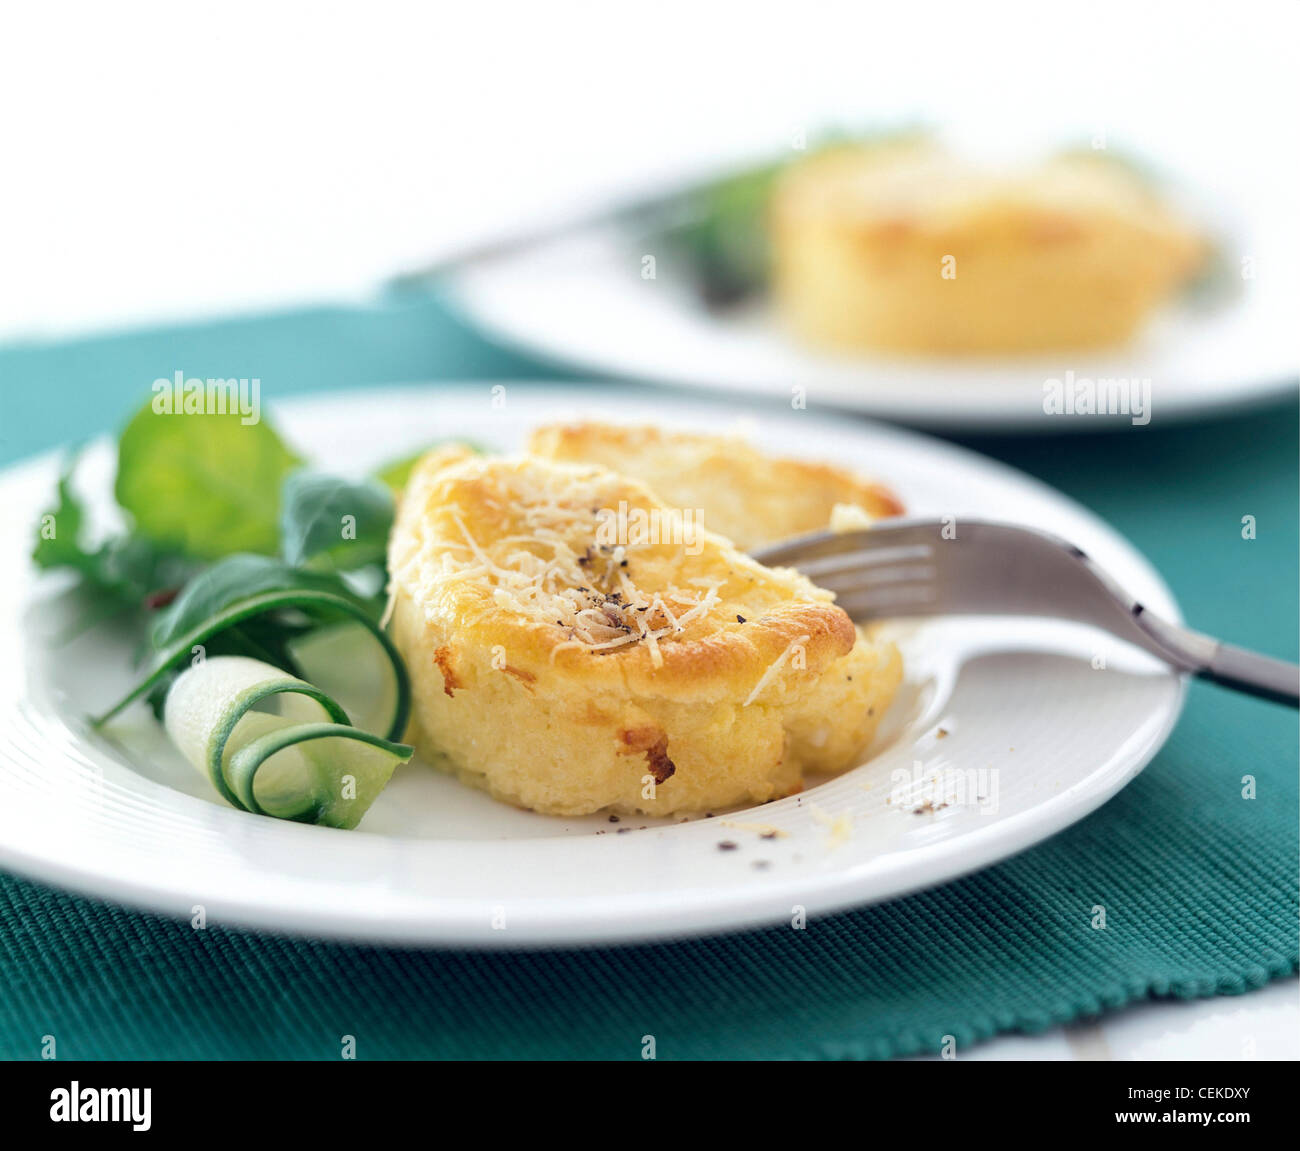 Twice baked Goats Cheese Souffles These light and tasty ...